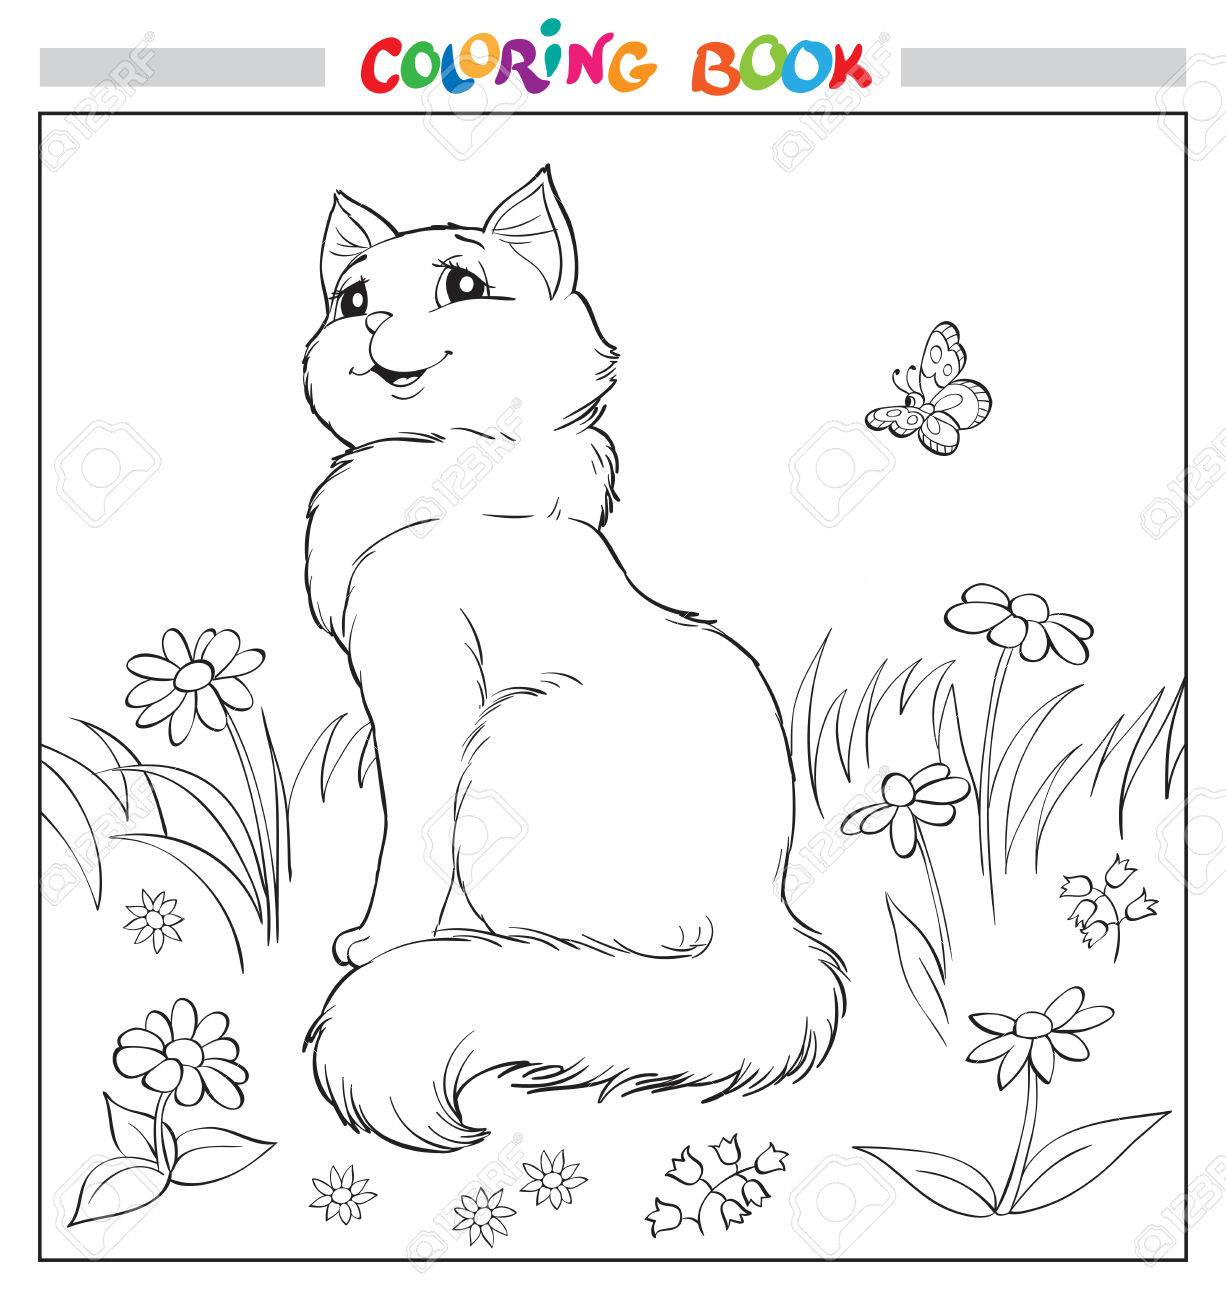 coloring book or page cat sit on grass among flowers and